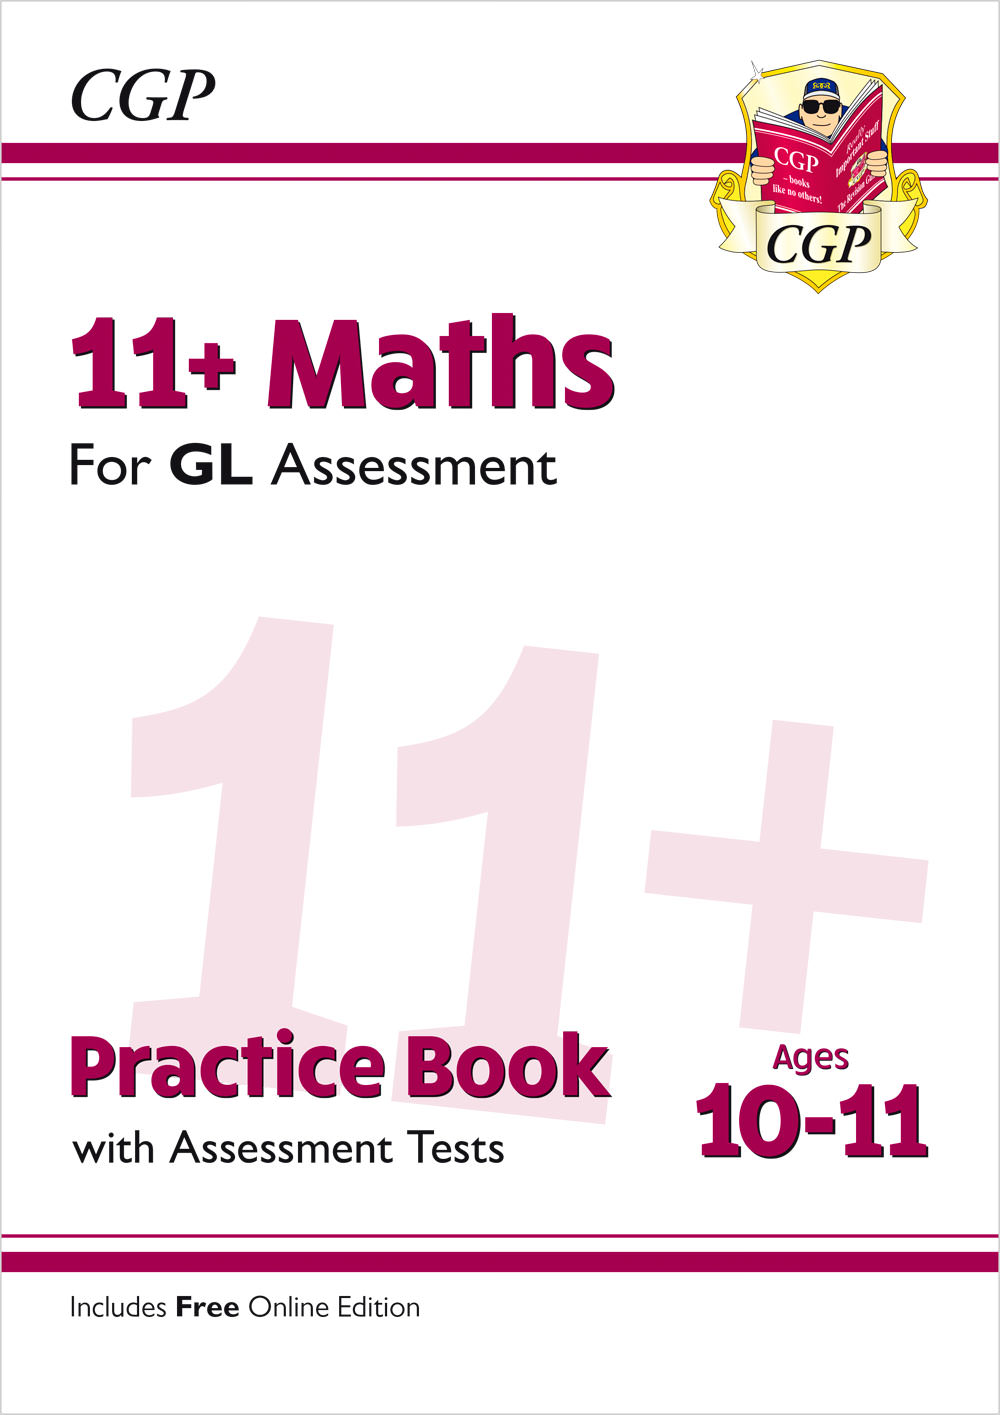 M6QE2 - New 11+ GL Maths Practice Book & Assessment Tests - Ages 10-11 (with Online Edition)